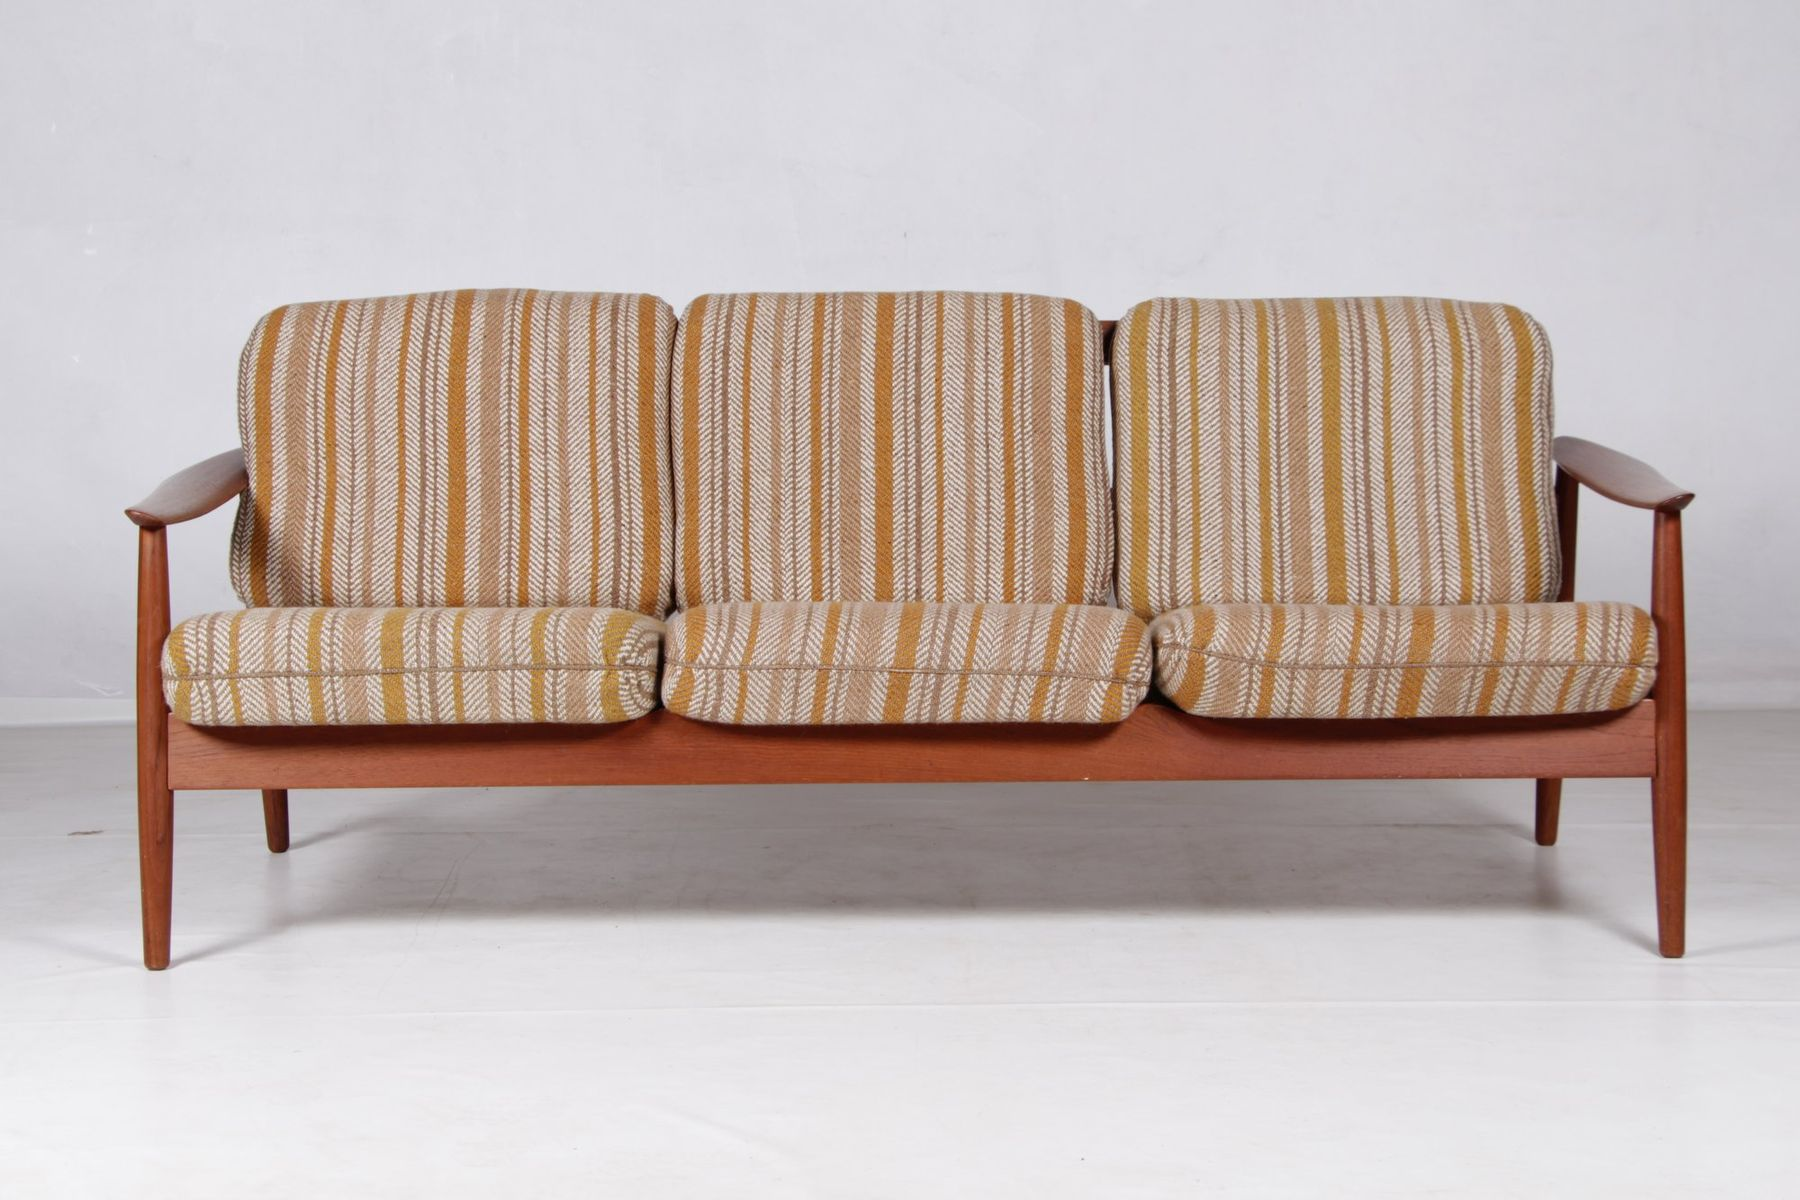 Teak Sofa By Arne Vodder For France Son 1960s